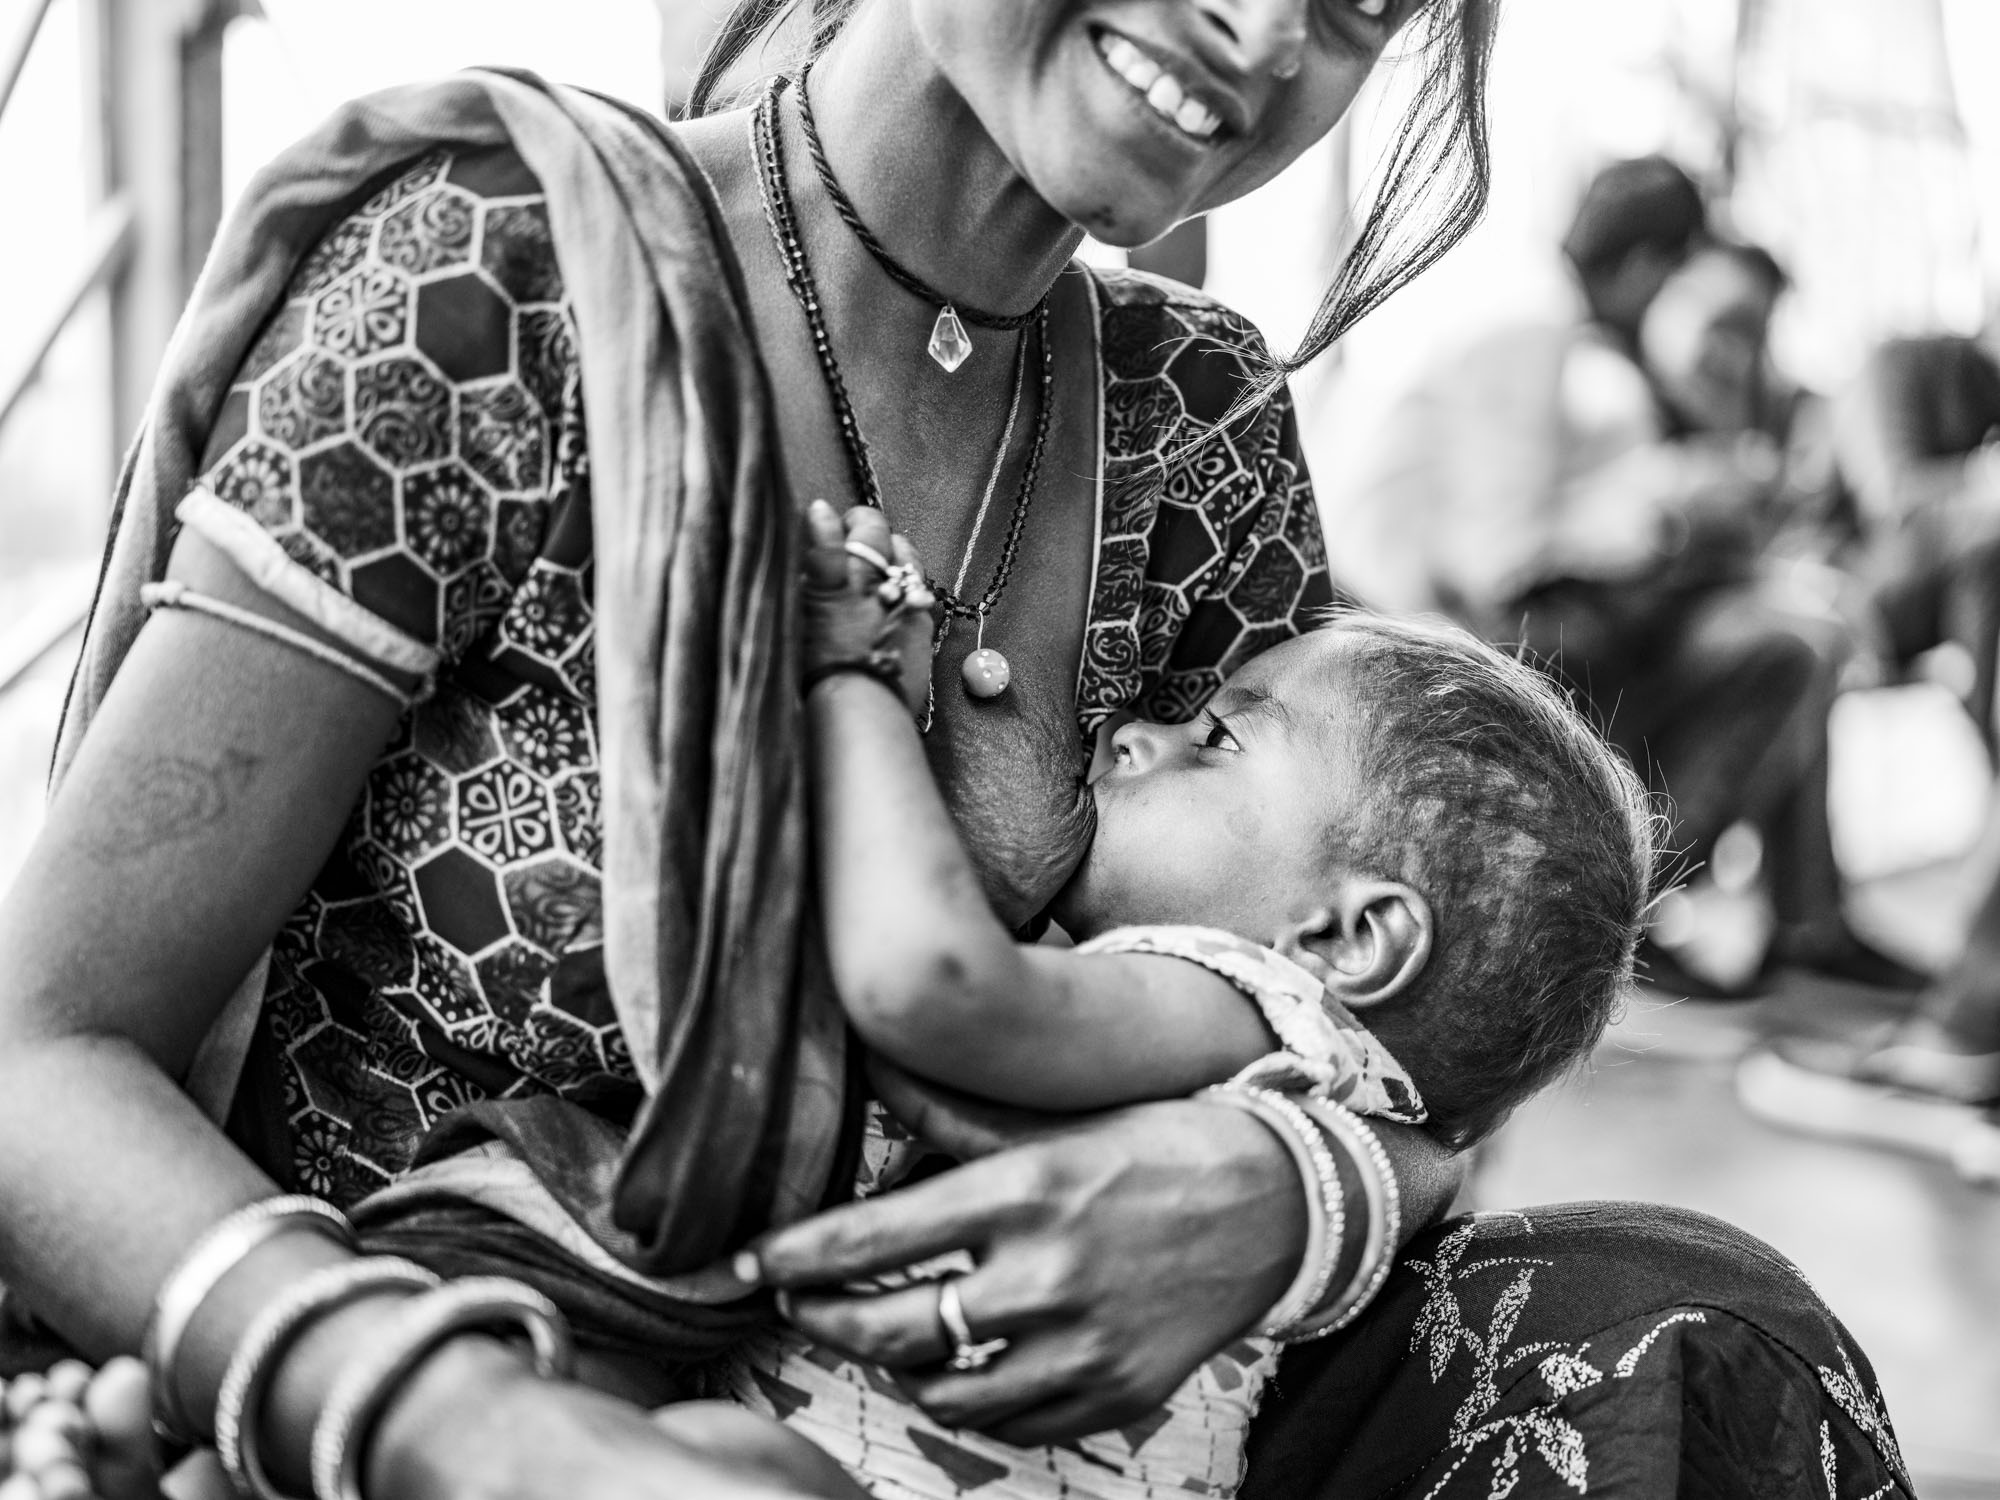 baby milk Gypsy Kalbelia tribe nomad Rajasthan India Documentary Photography Jose Jeuland Photographer print fine art